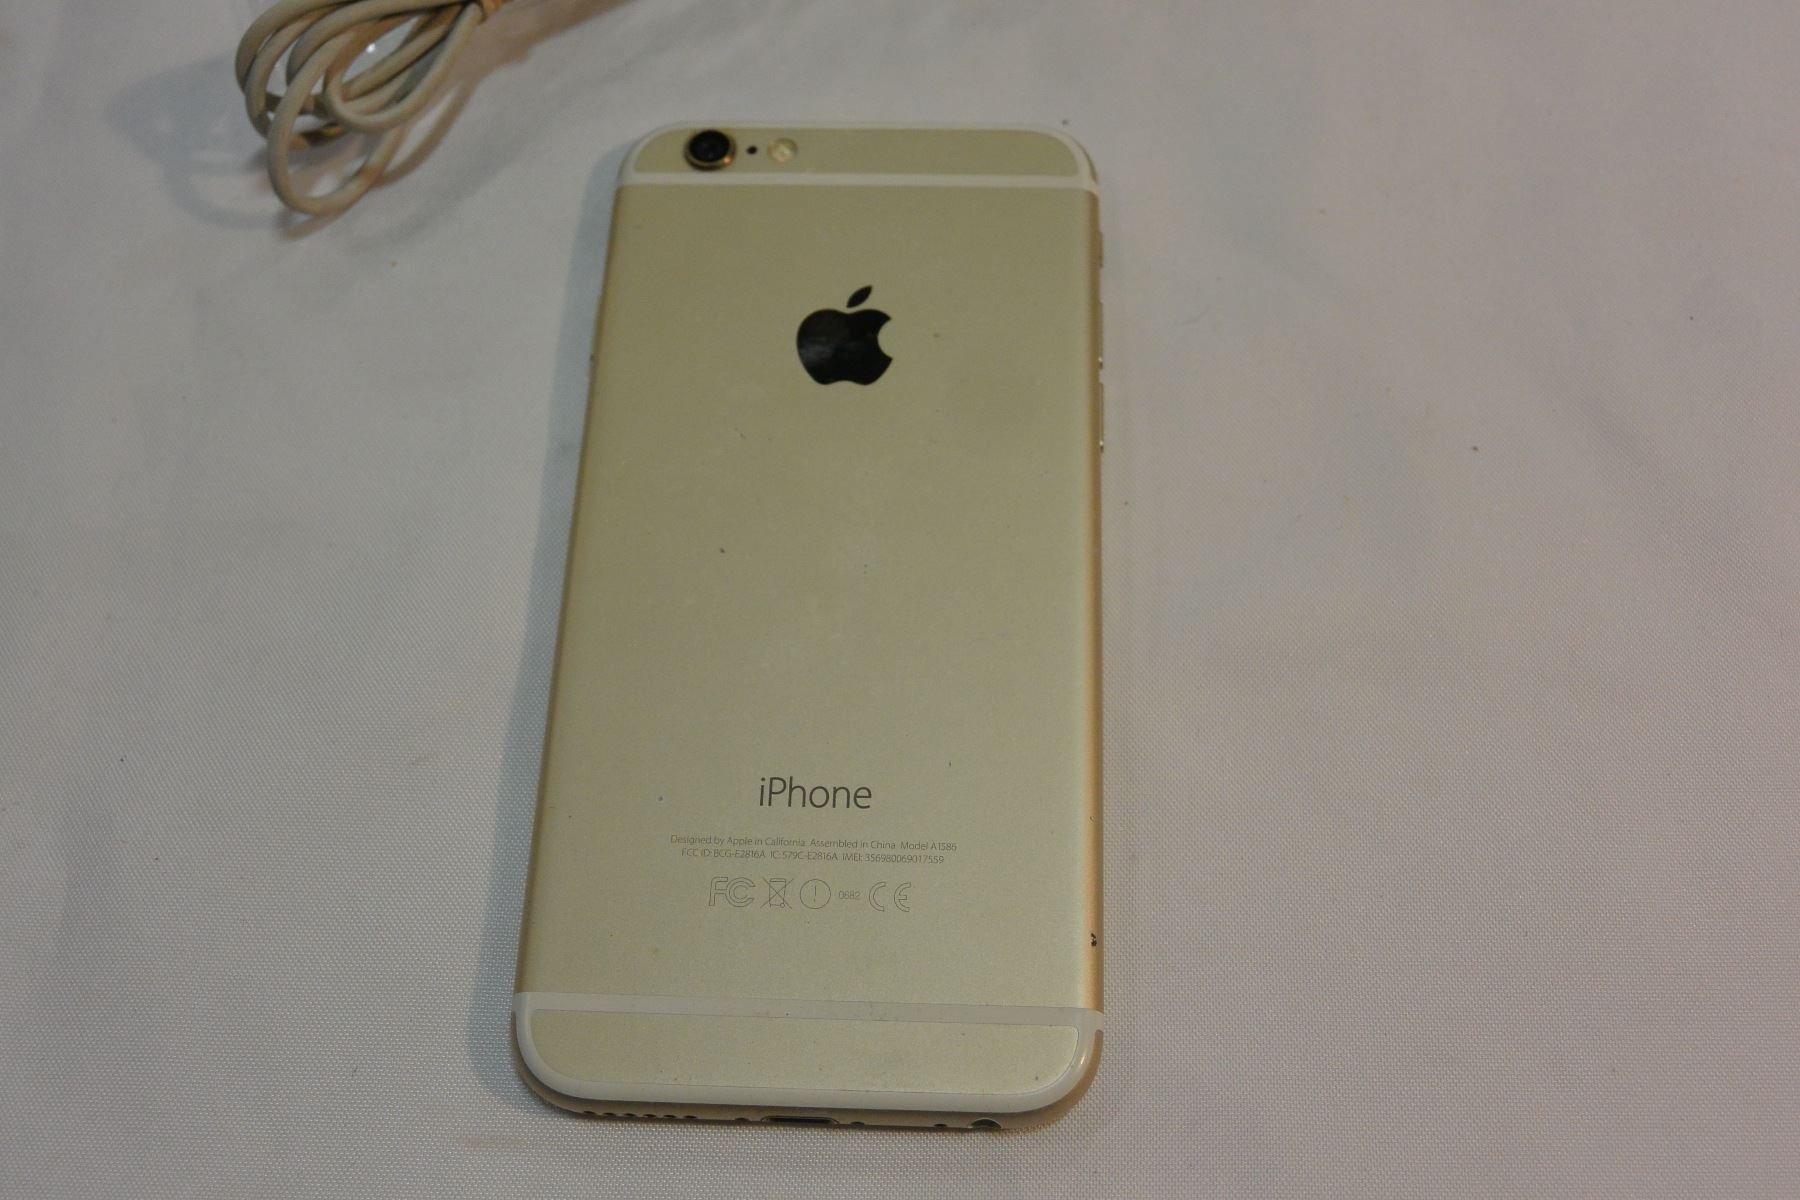 Apple Iphone 6 64gb Rose Gold Unlocked For Any Provider Comes Image 3